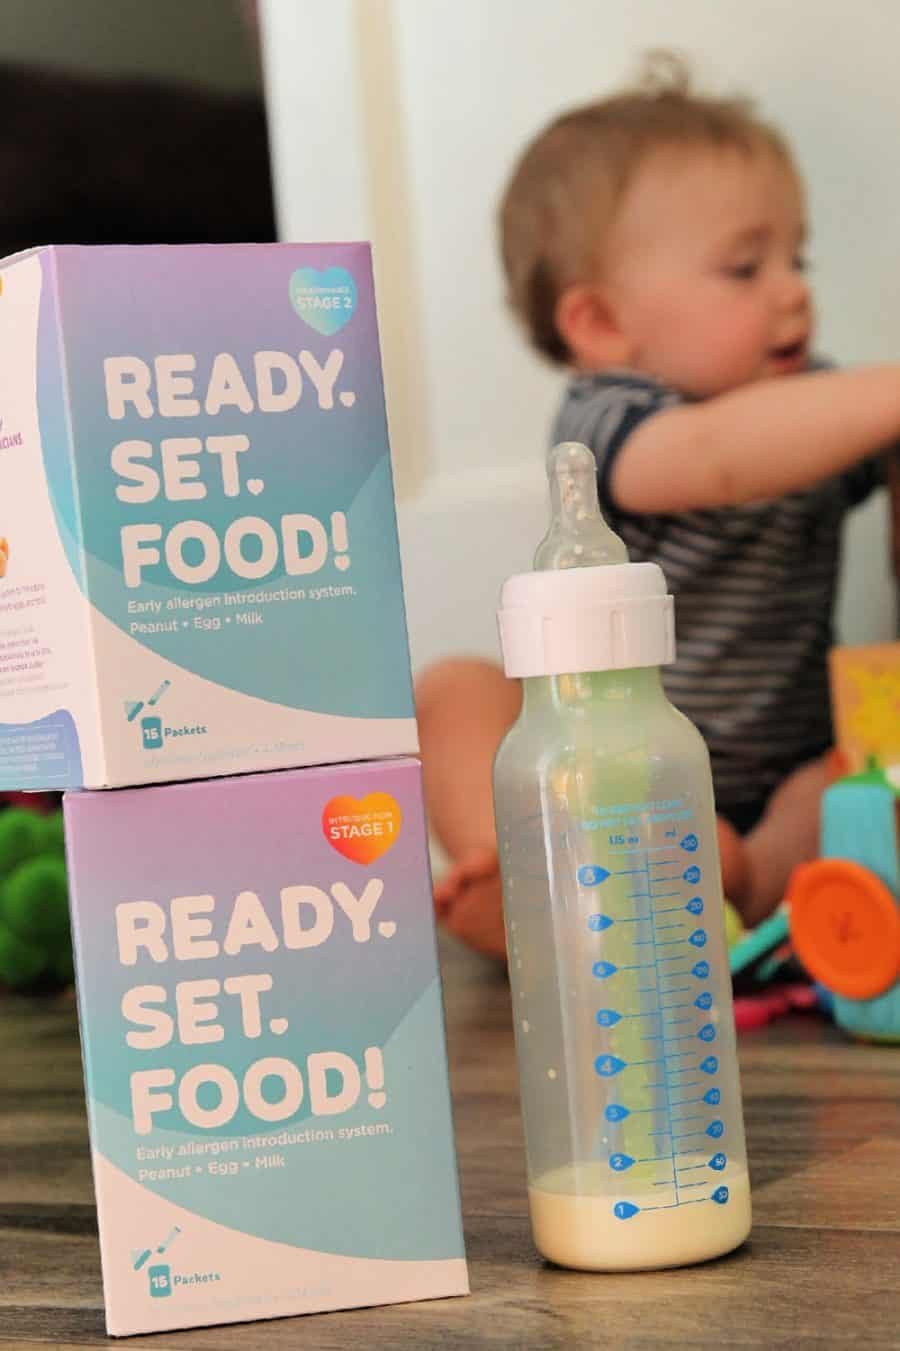 baby bottle - Preventing Childhood Food Allergies [With Ready, Set, Food!]